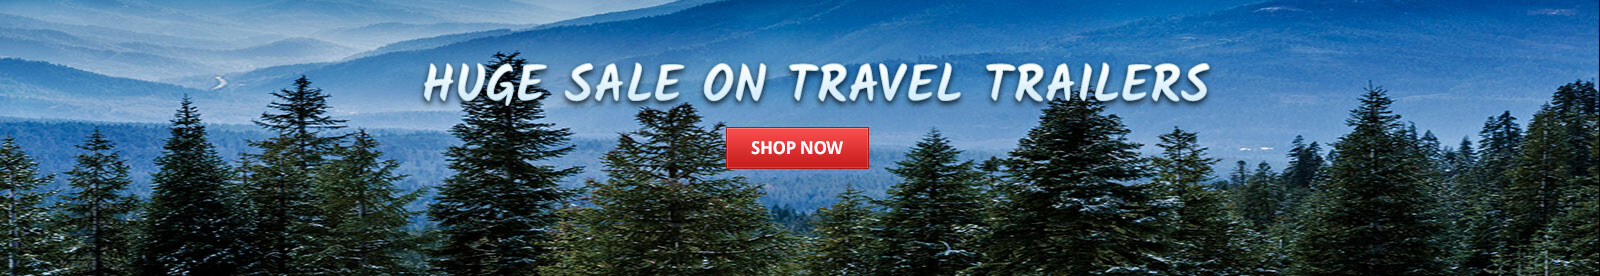 Travel Trailers Huge Sale